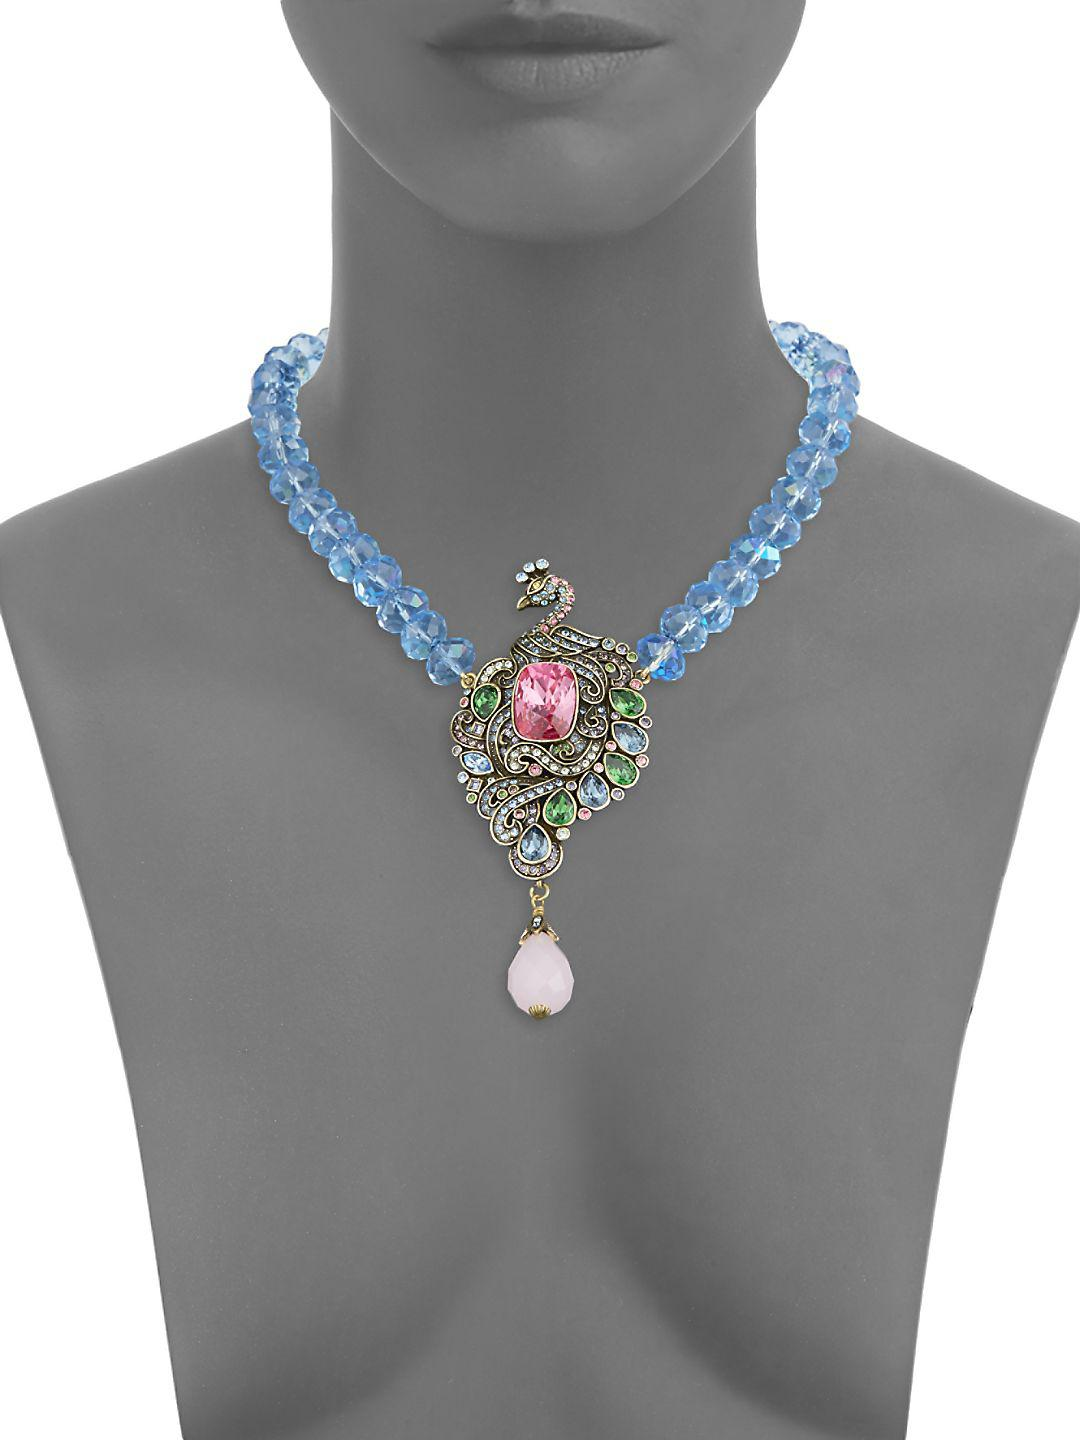 Heidi Daus Glass Crystal Necklace in Blue